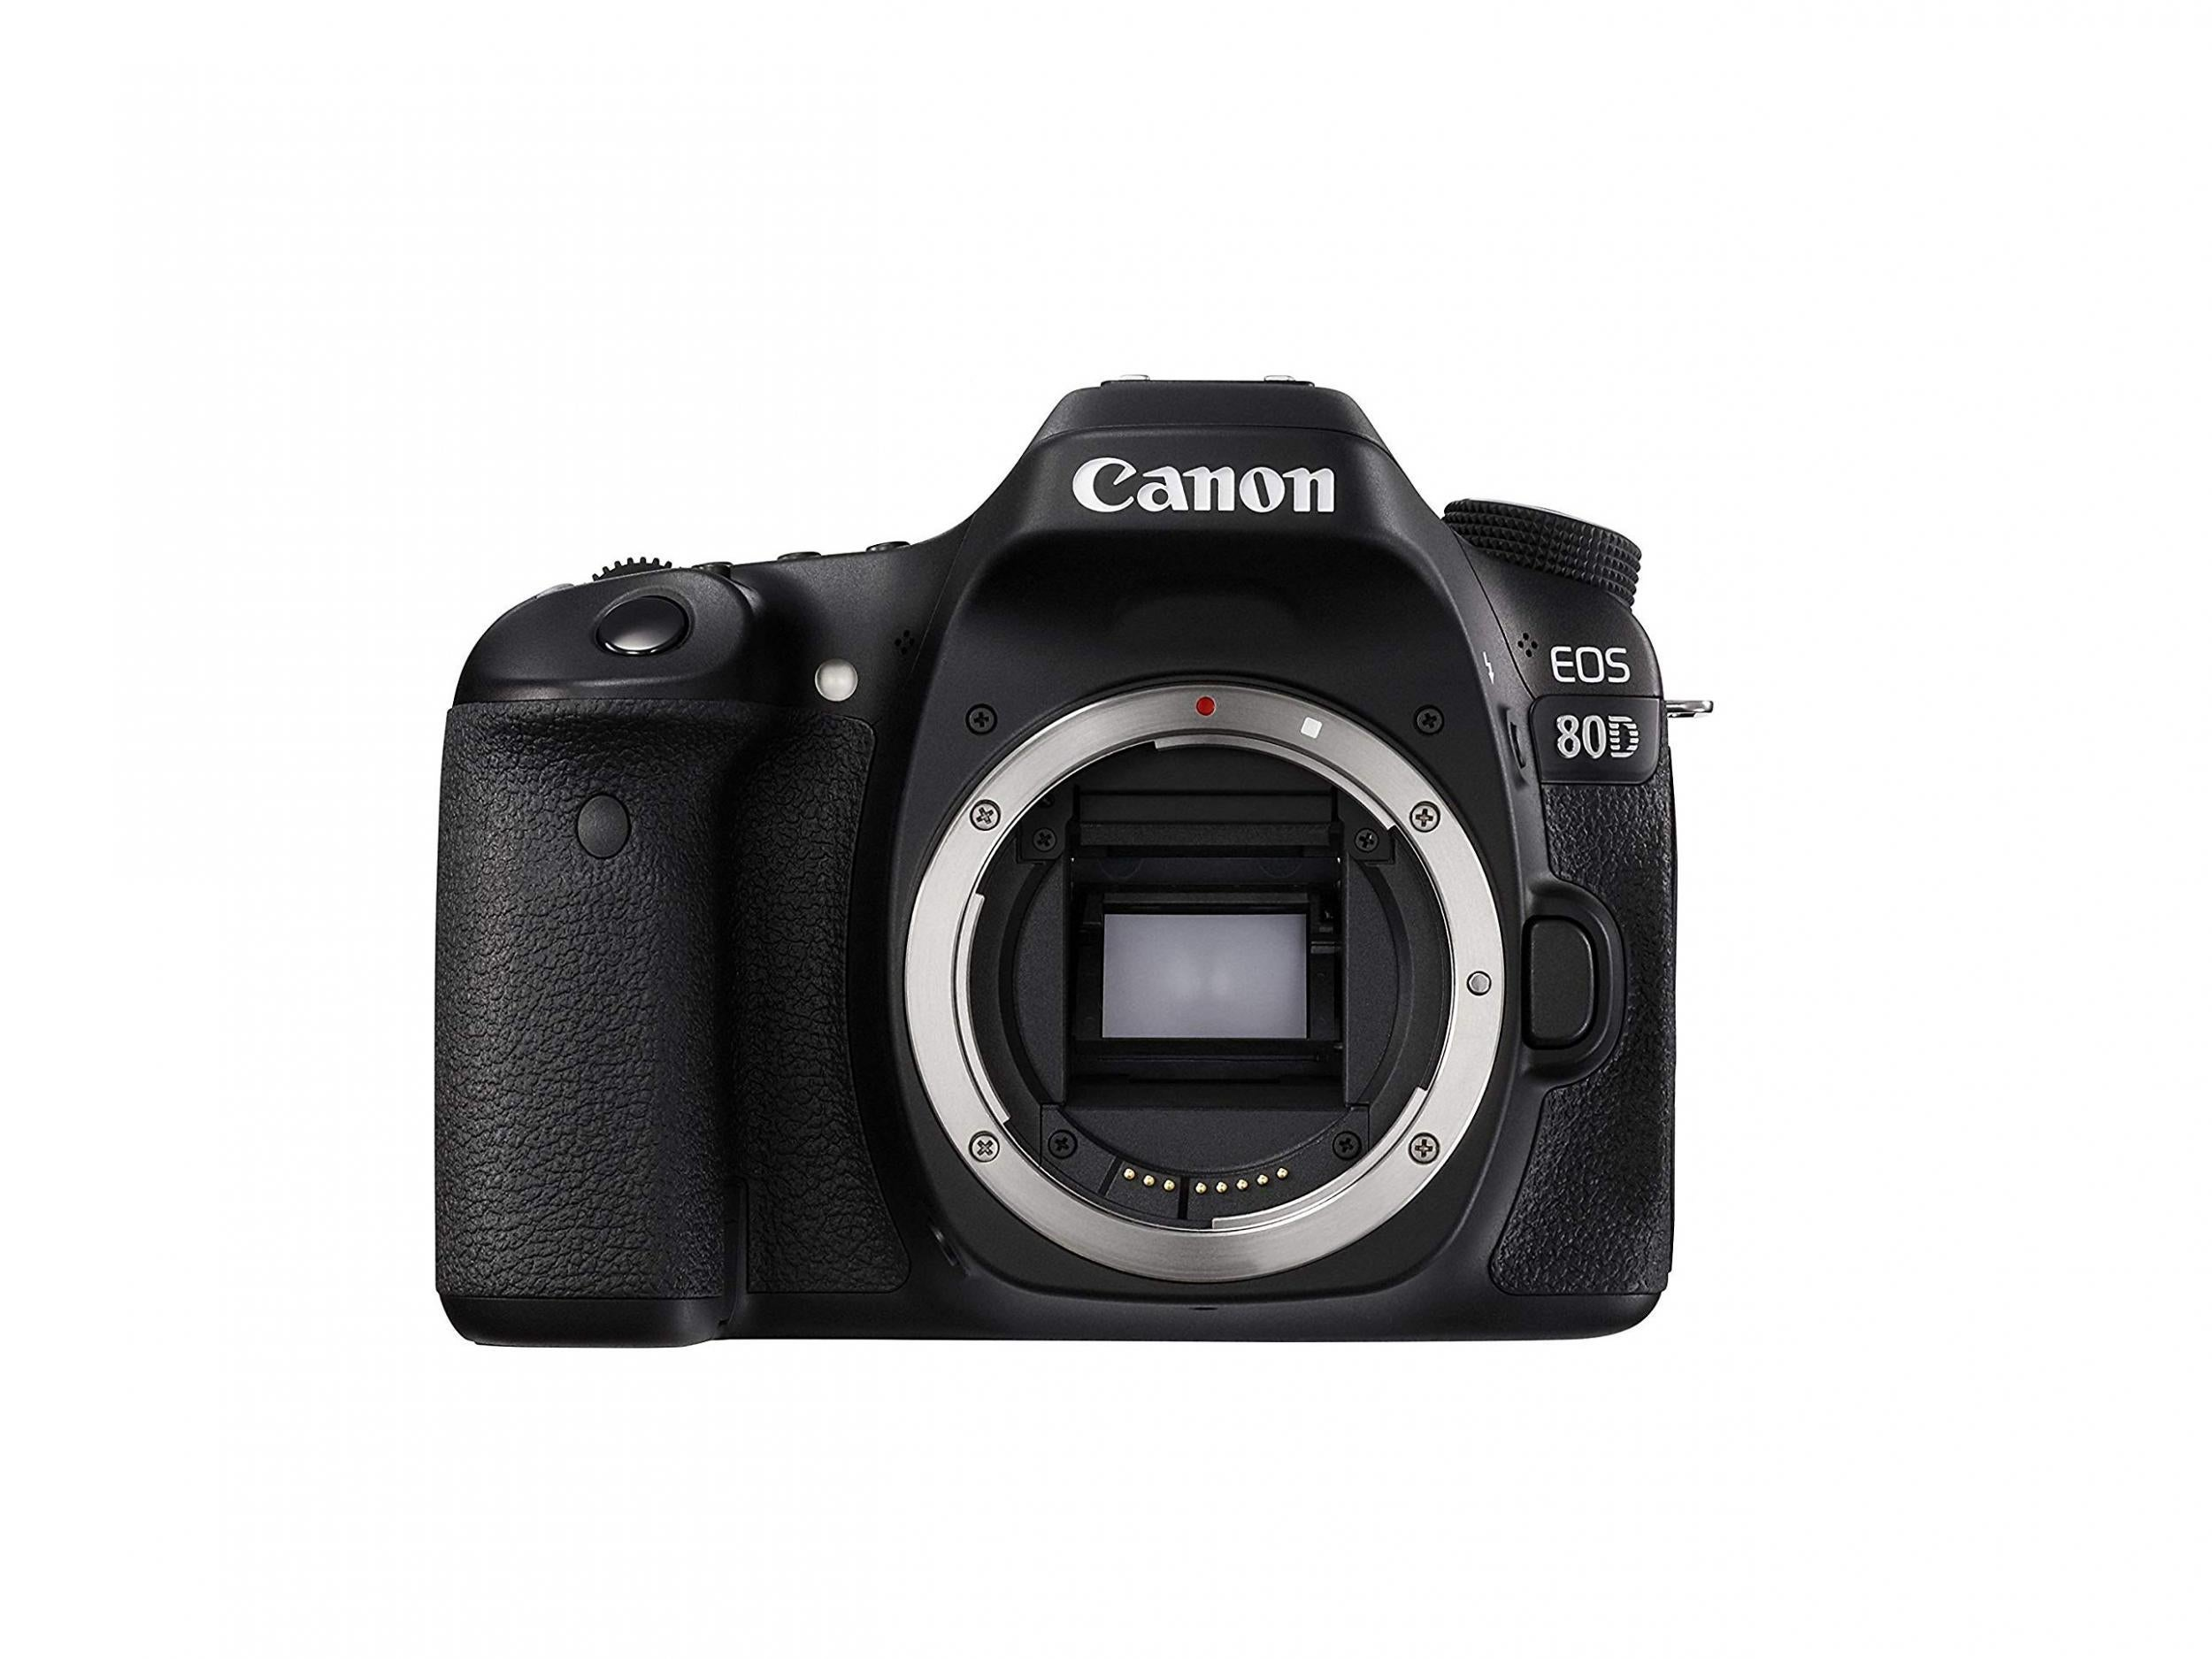 a2e63e7189f Best DSLR camera for all budgets and skill levels, from beginners to  professionals